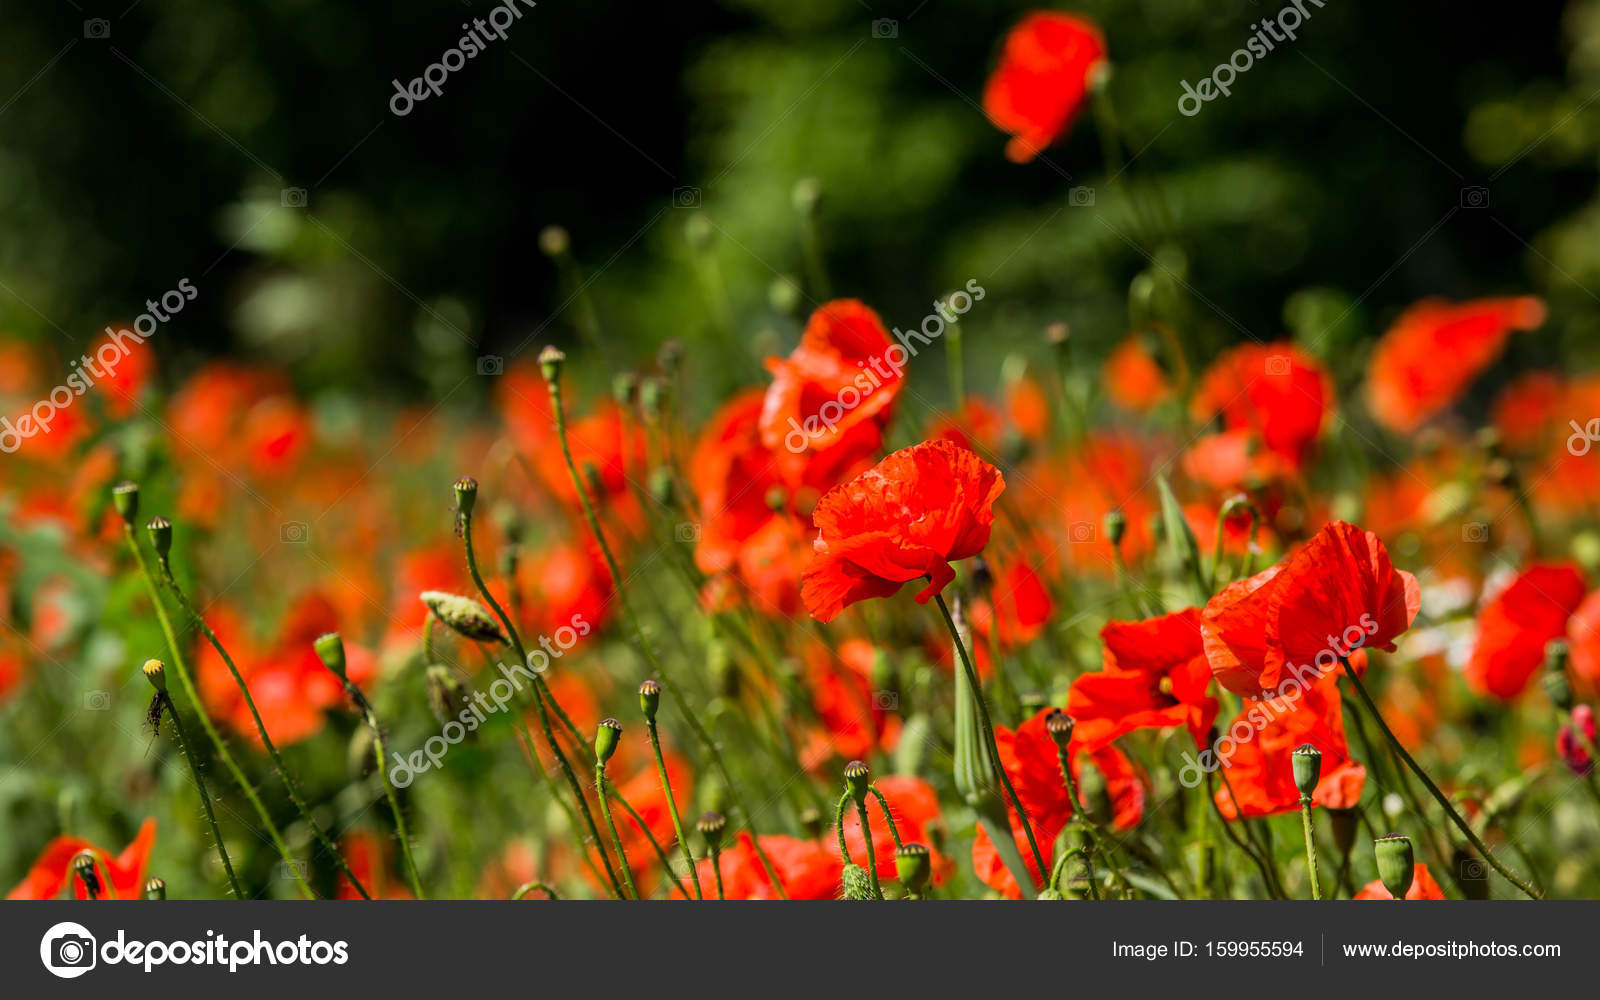 Glade of red poppies flowers red poppies blossom on wild field red glade of red poppies flowers red poppies blossom on wild field red poppies in soft light mightylinksfo